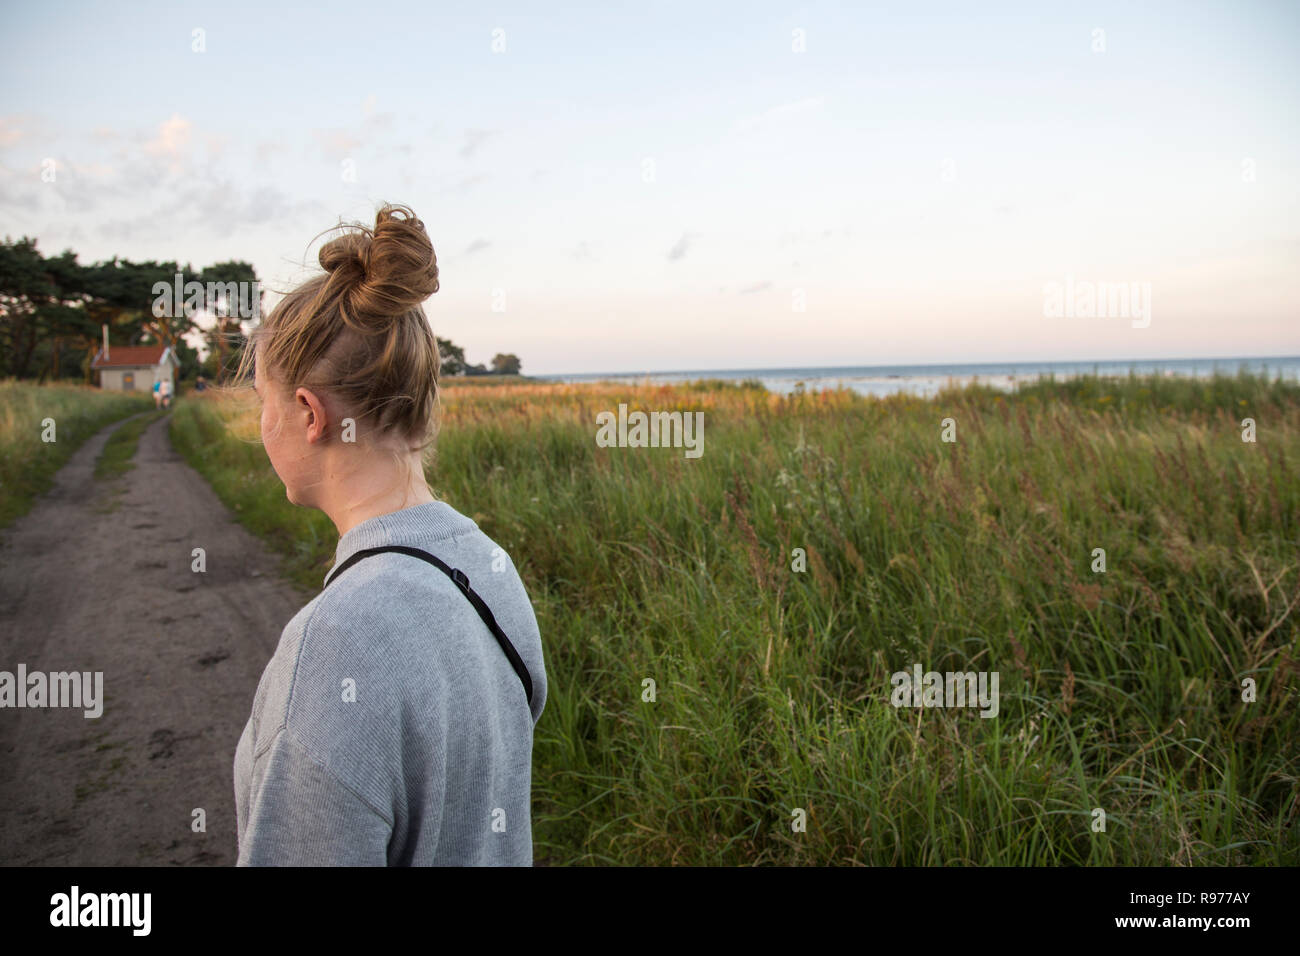 Young woman standing on an unpaved road in Ornahusen, Sweden - Stock Image